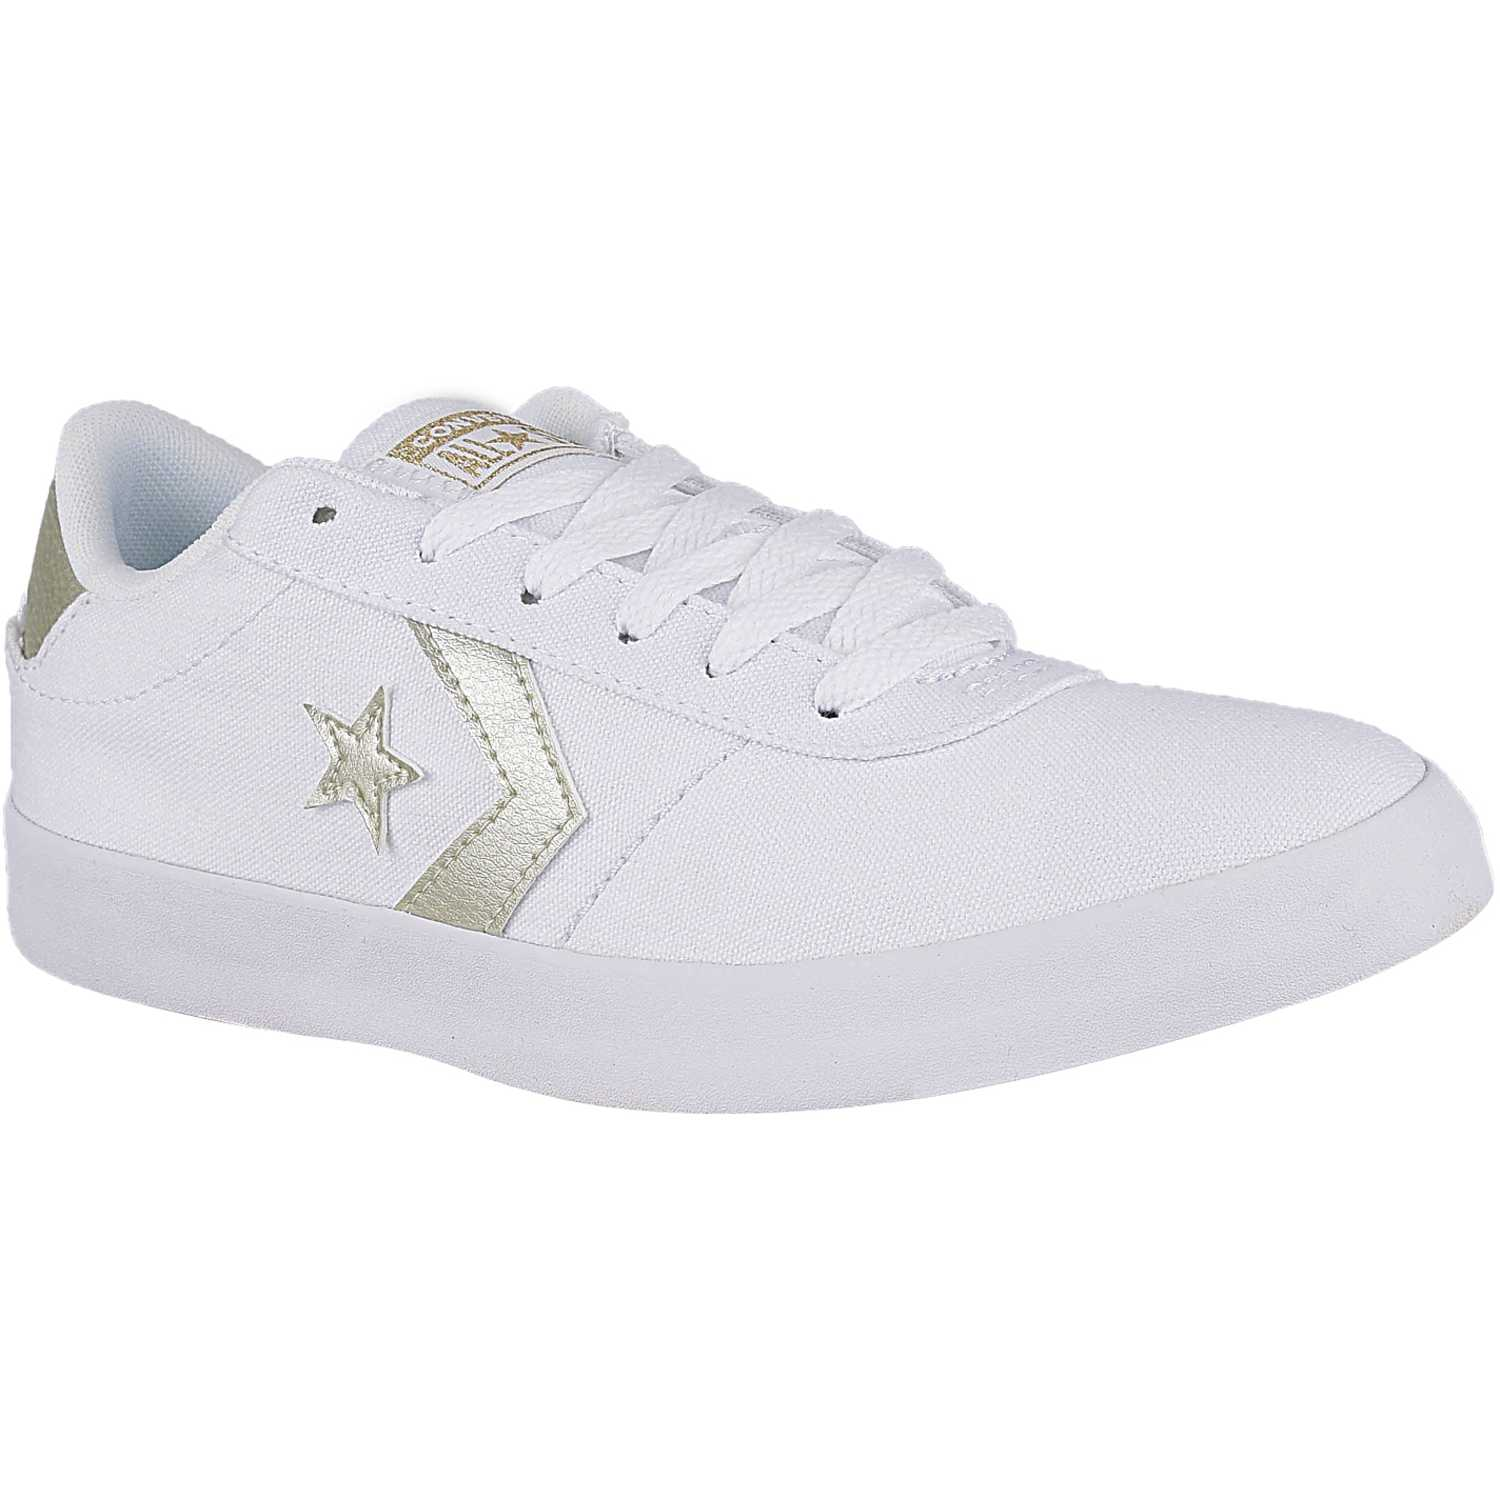 Zapatilla de Mujer Converse Blanco / gris point star canvas metallic